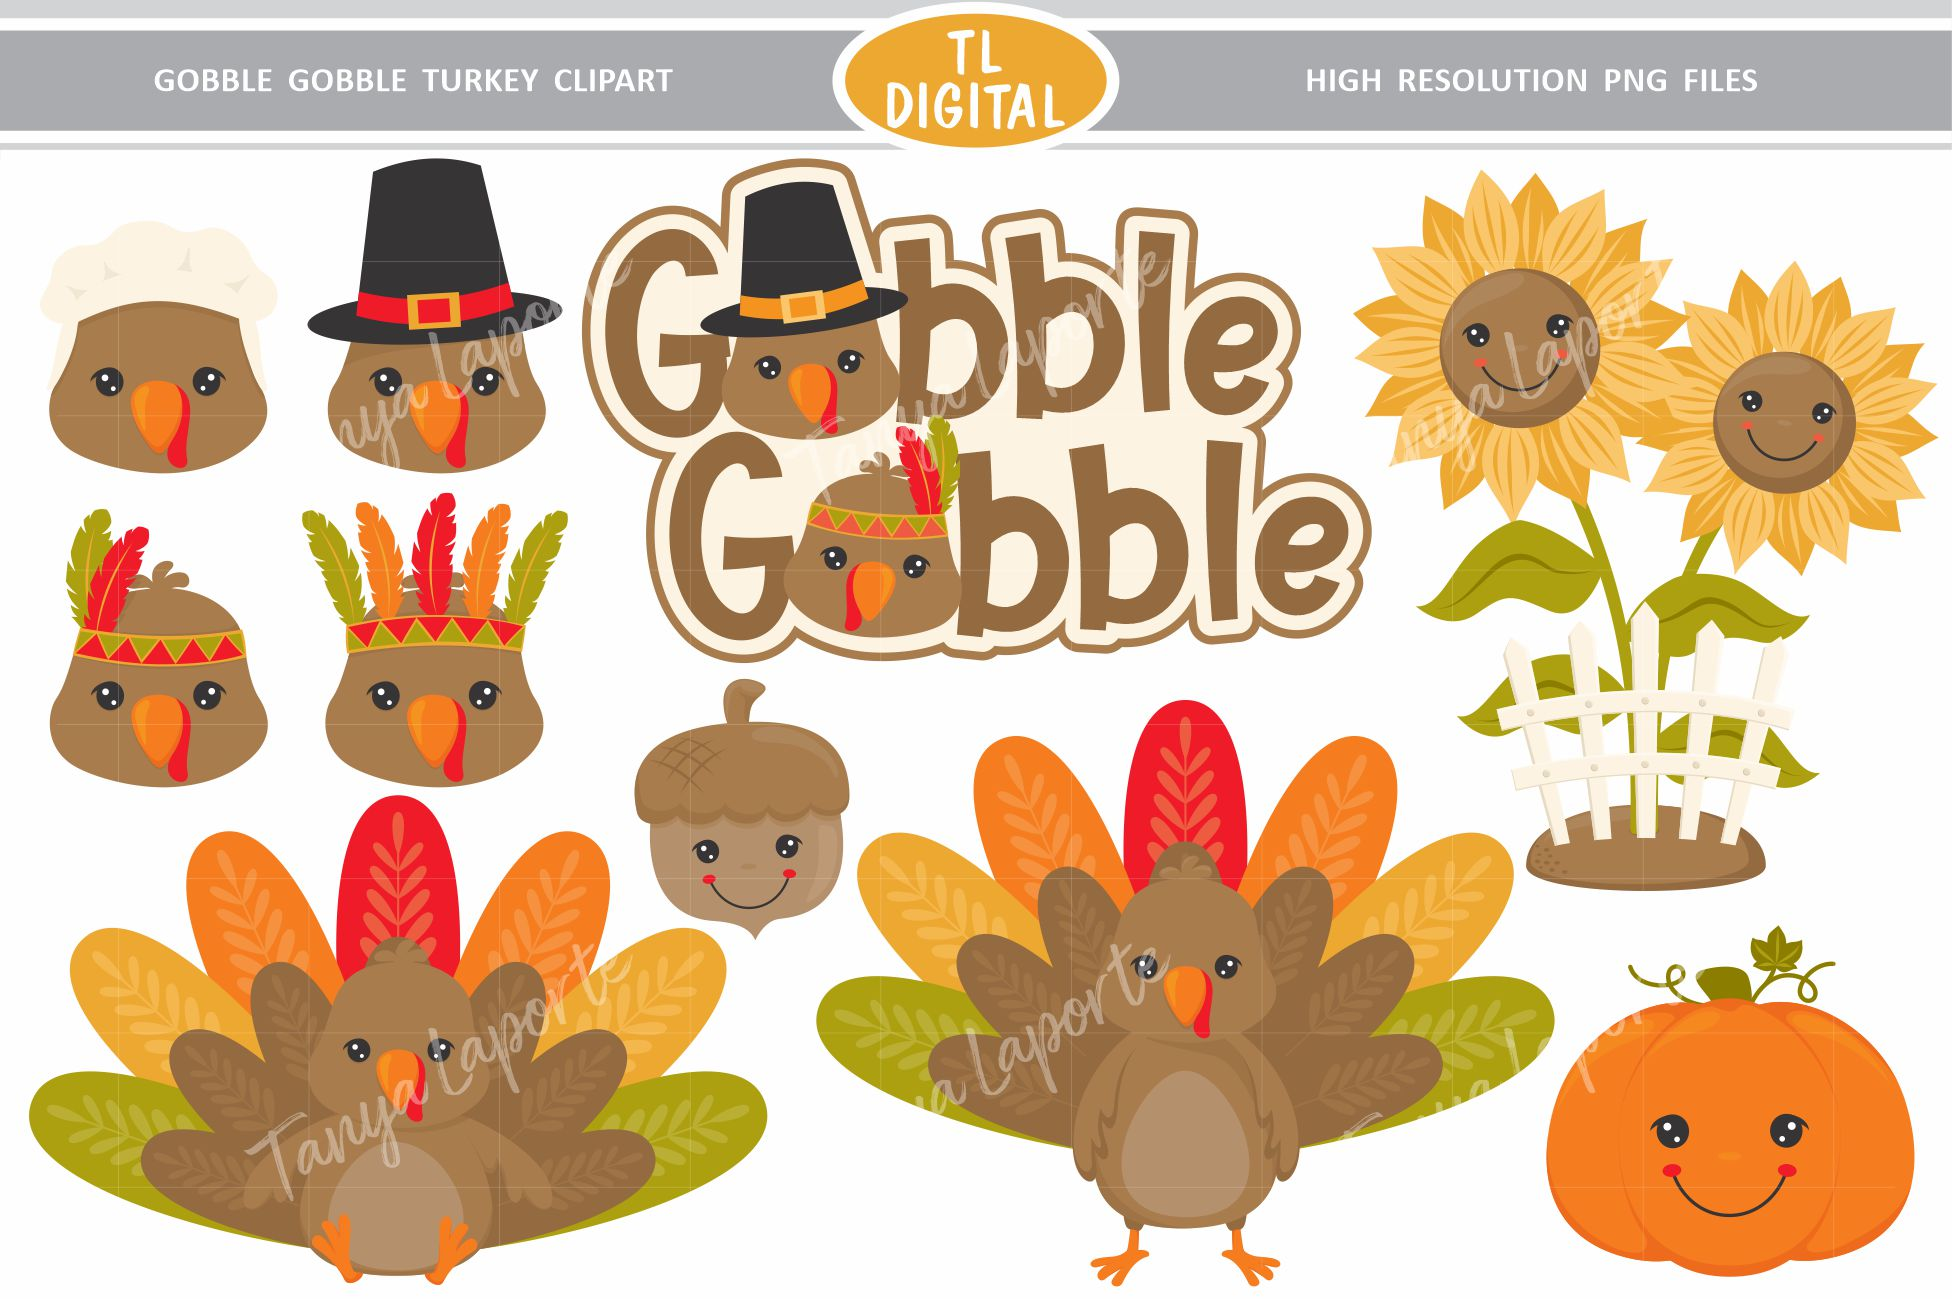 Thanksgiving Turkey Clipart - Gobble Gobble - 10 PNG Graphic example image 1